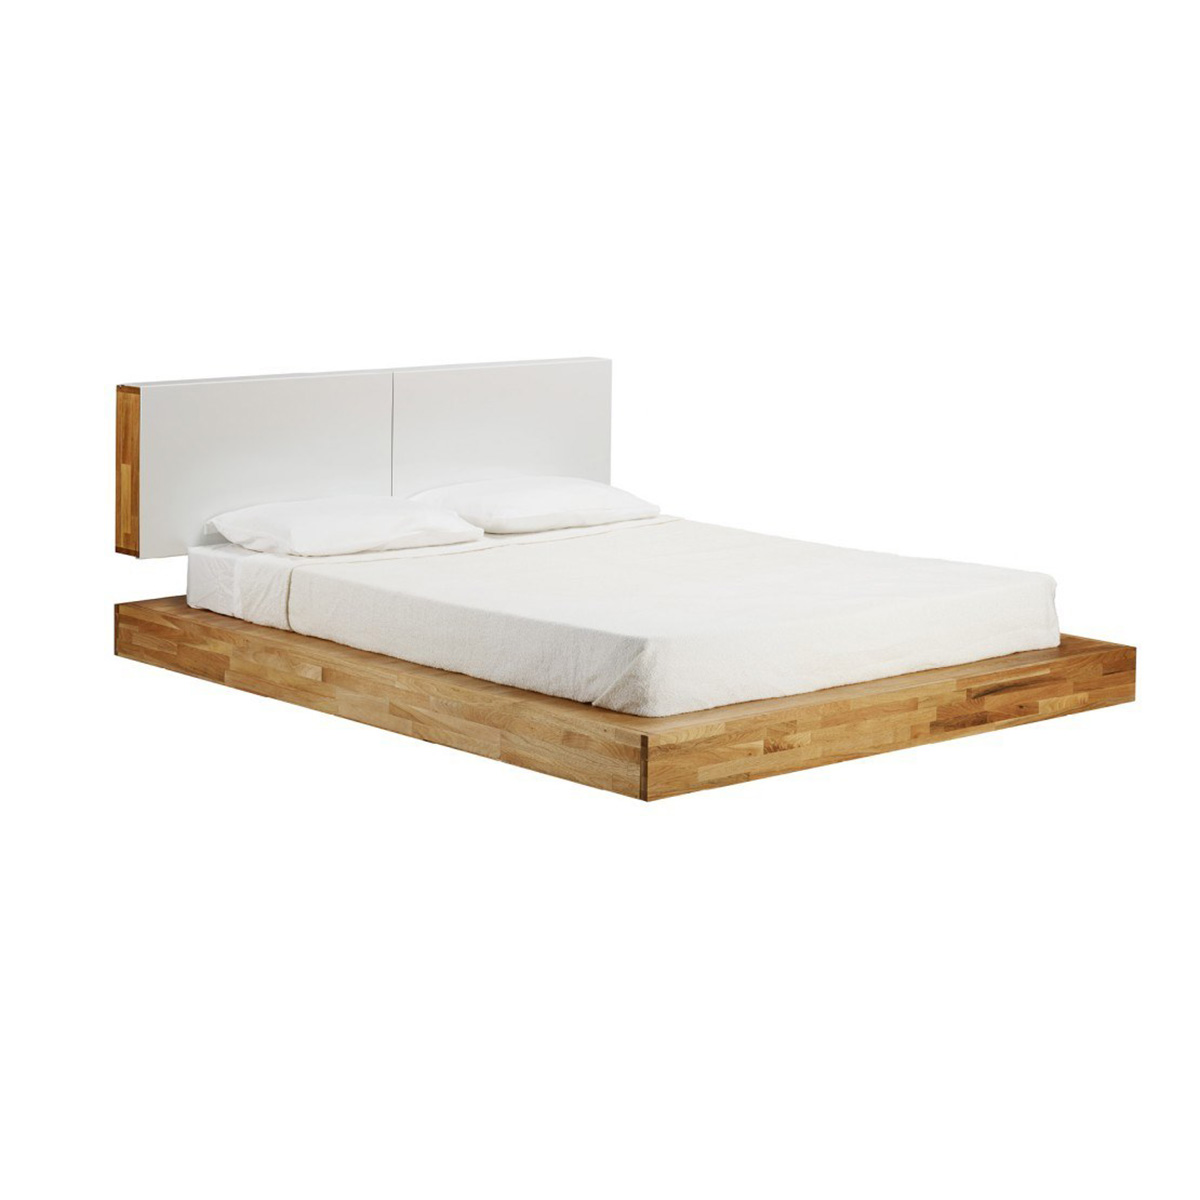 queen full diy platform bed plans simple pedestal build wood size frame bedroom wooden design large of